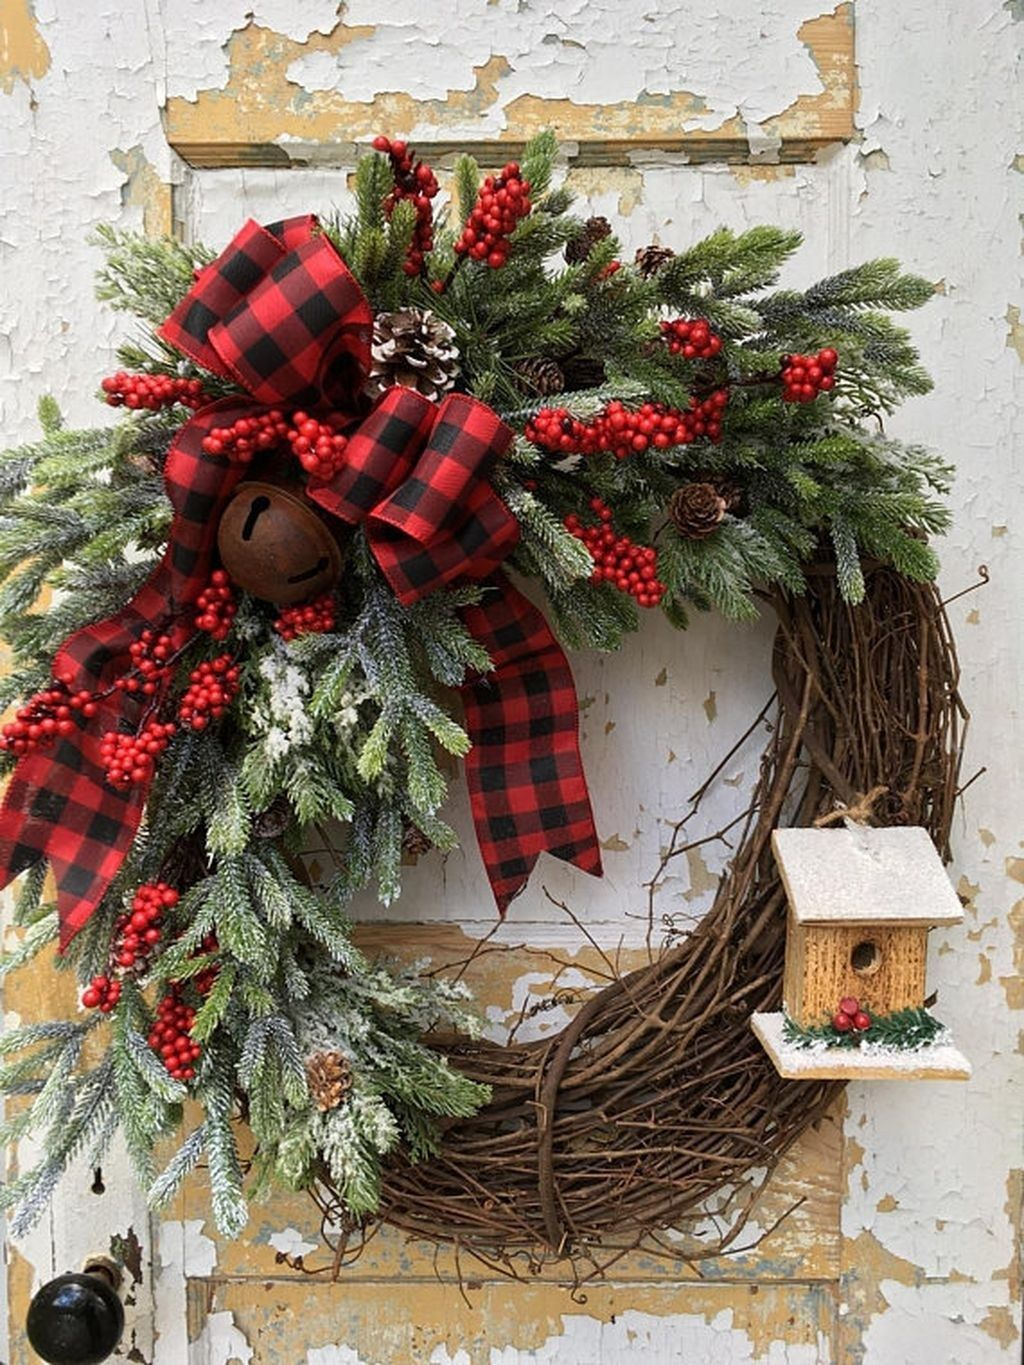 Elegant Rustic Christmas Wreaths Decoration Ideas To Celebrate Your